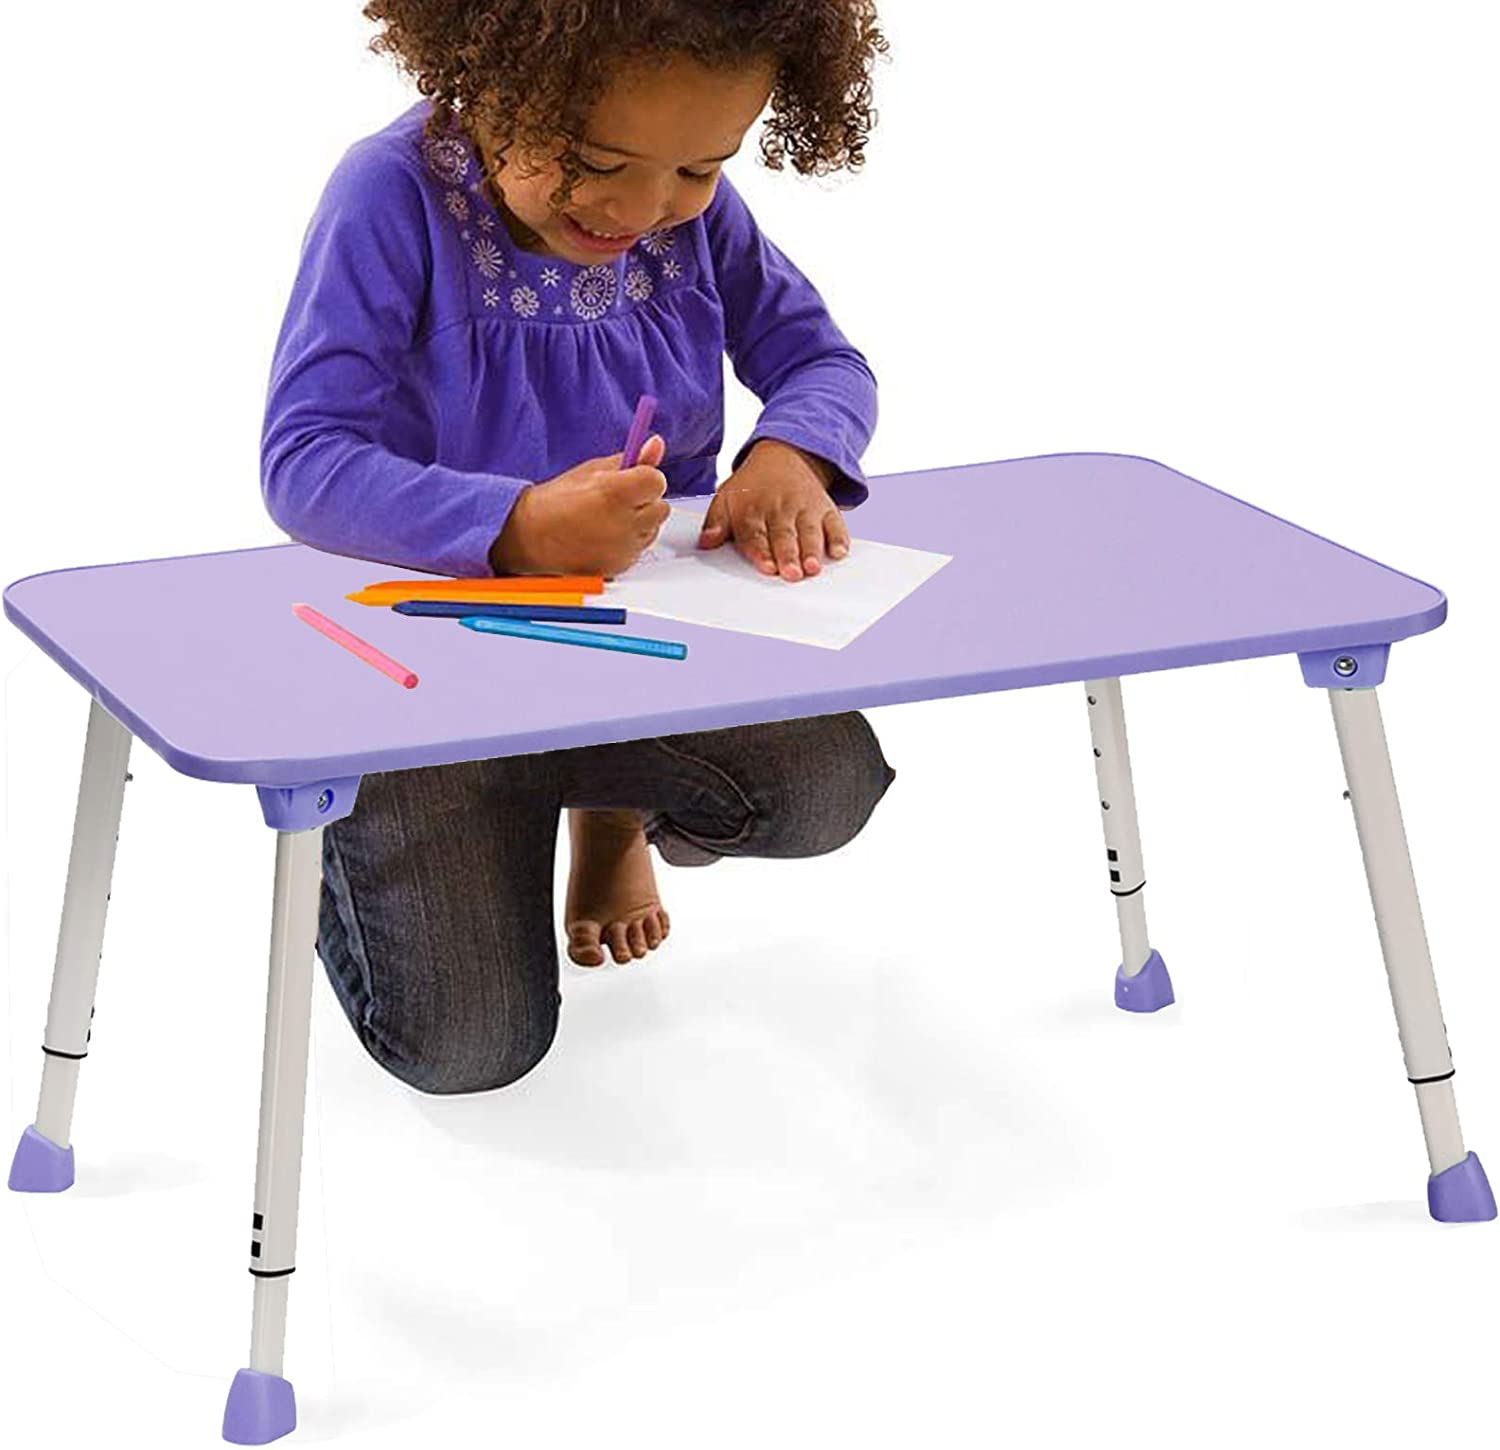 """CHEFAN Portable Kid Desk, Height Adjustable Desk for Homeschool and Classrooms, Foldable Writing Table for Kids and Teens in Orchid Purple, 23"""" L x14.5"""" W"""